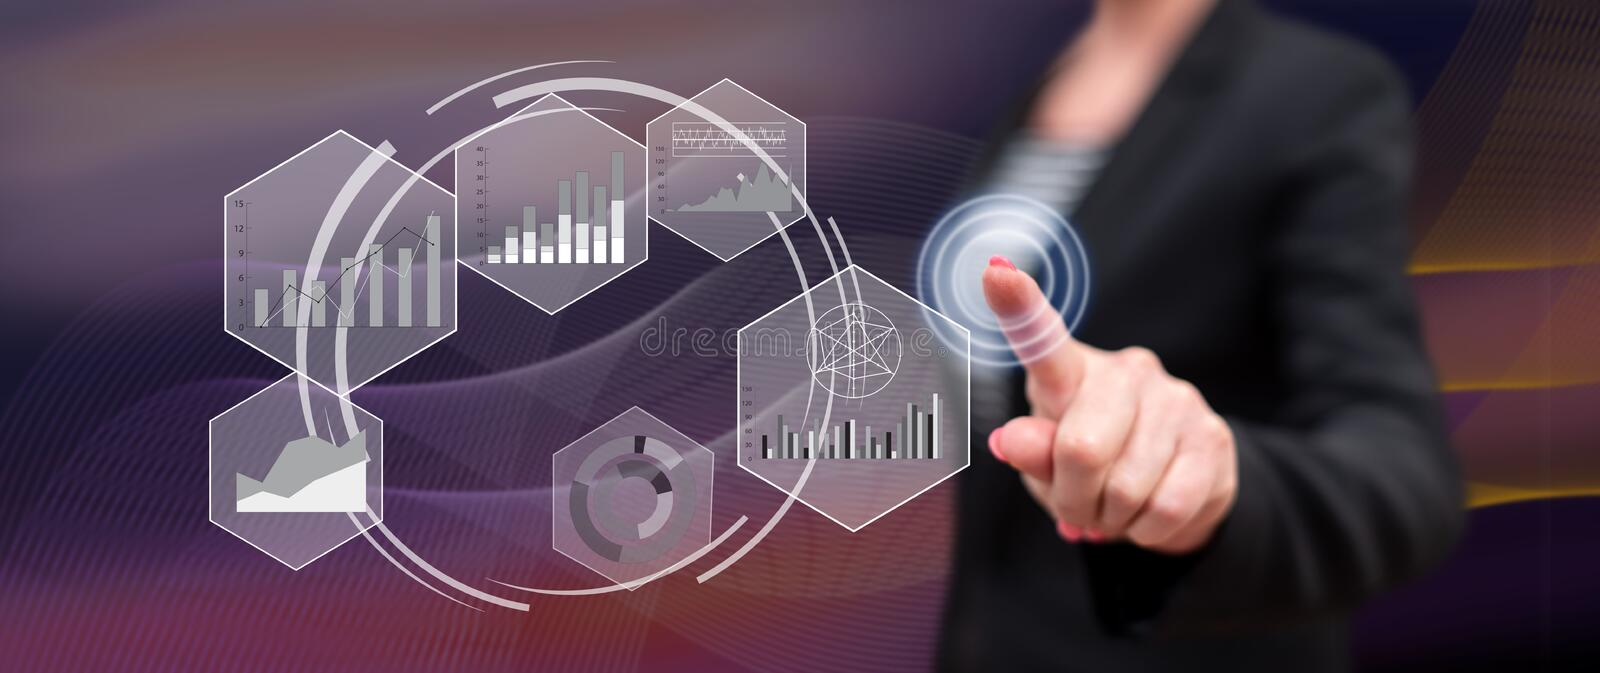 Woman touching a data analysis concept stock illustration